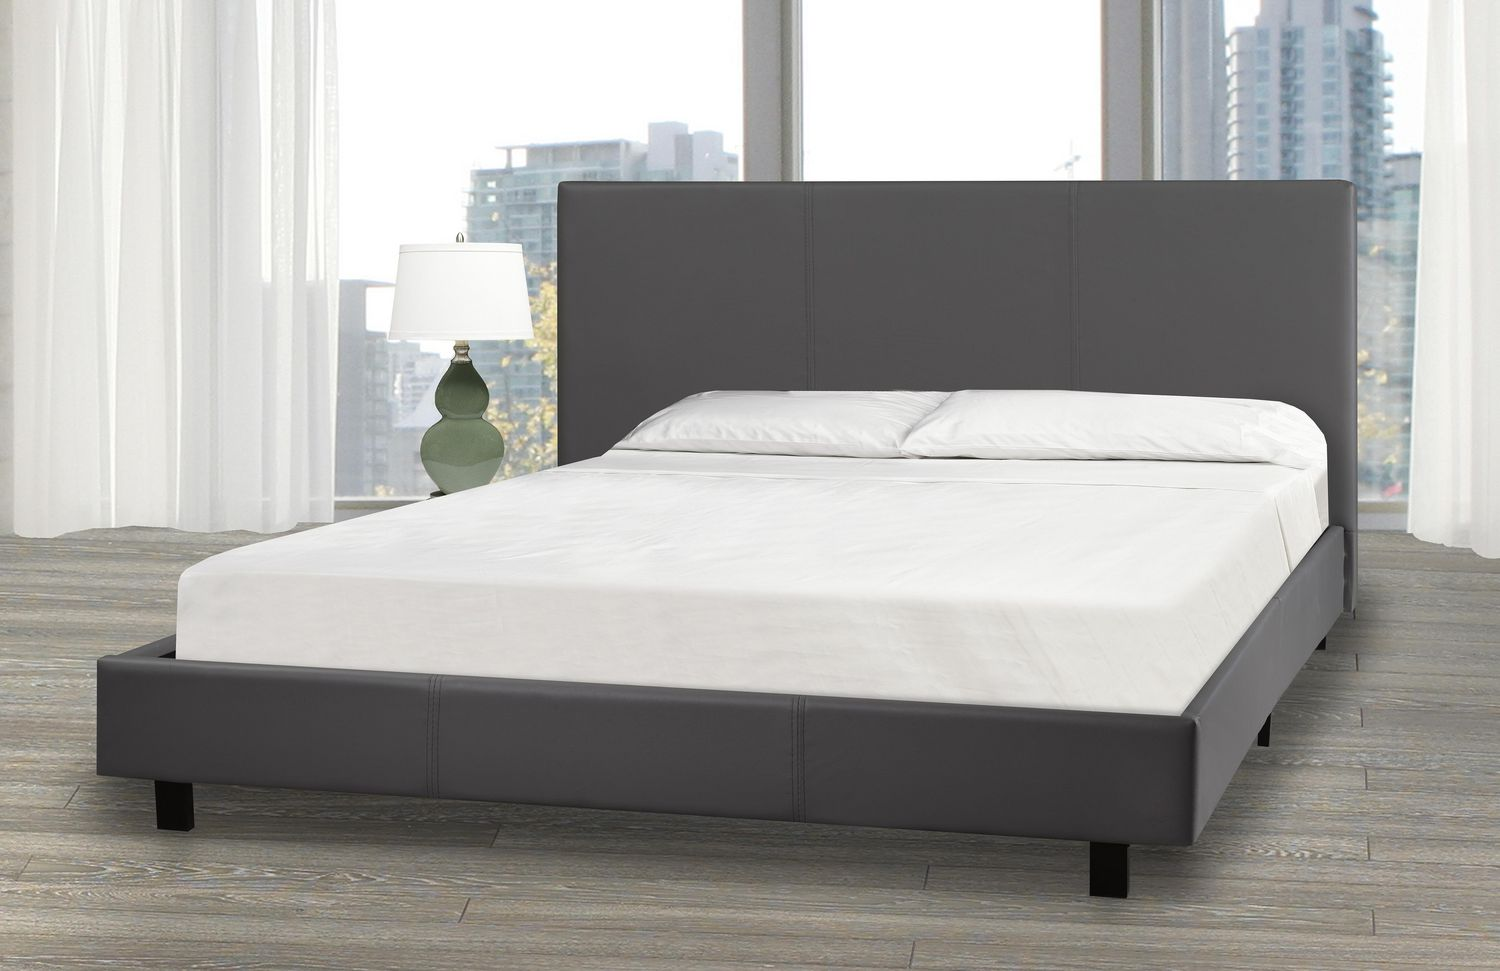 Picture of: Queen Size Platform Bed And Mattress Set Grey Walmart Canada